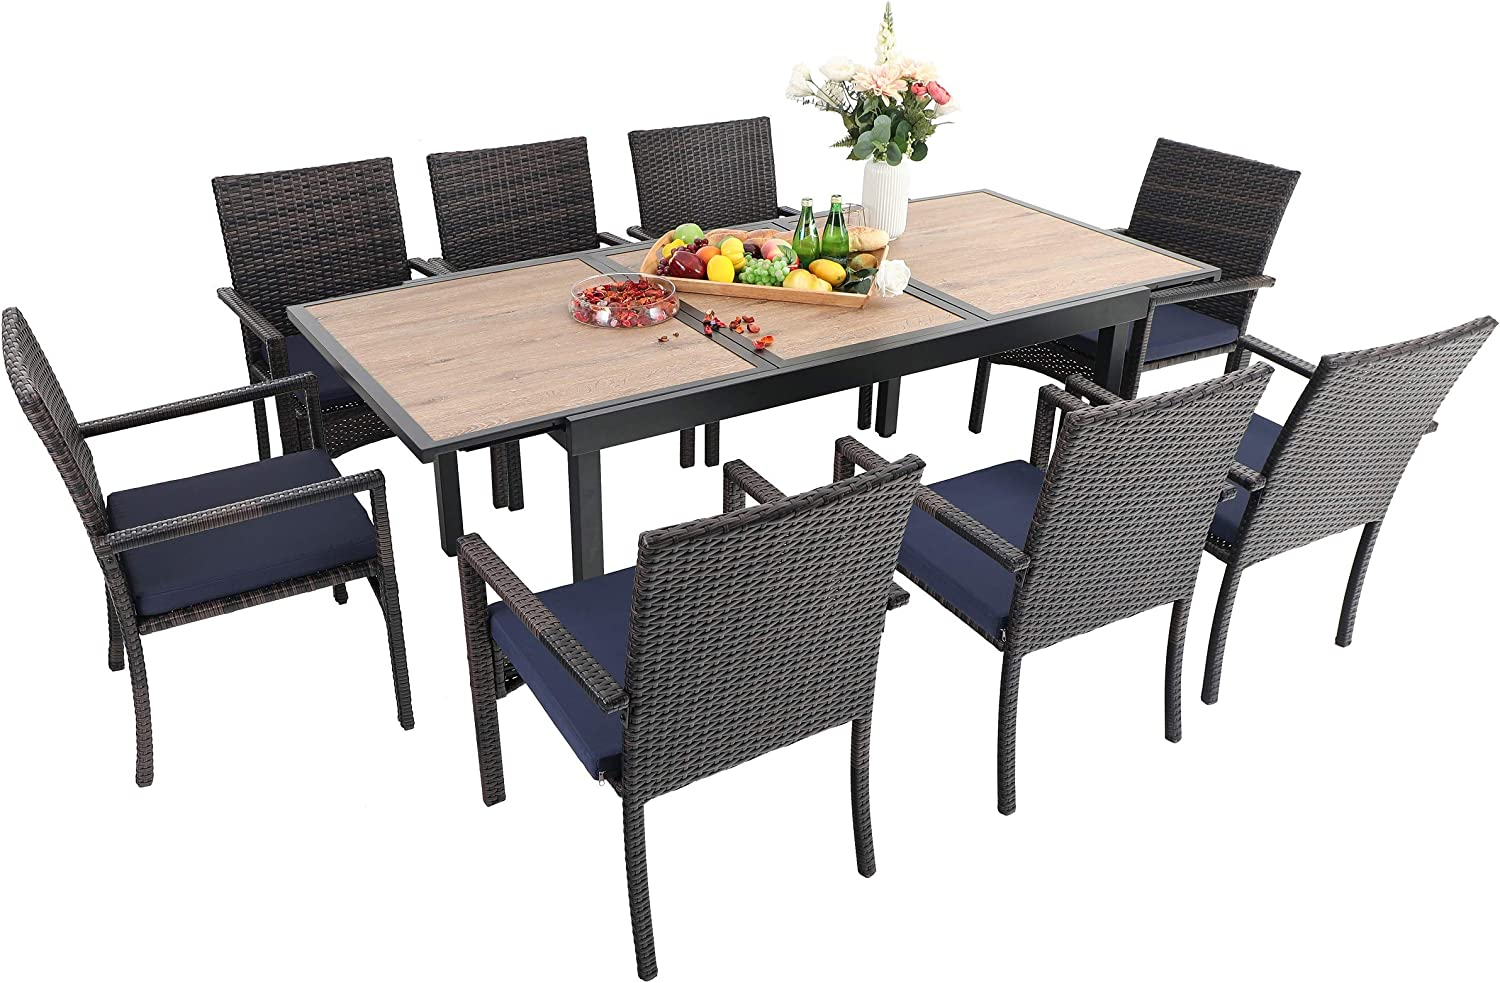 Sophia & William Outdoor Patio 9 Pieces Dining Set with 1 Expandable Rectangle Metal Table with Wood-Like Top and 8 PE Rattan Chairs. Modern Outdoor Furniture for Poolside, Porch, Patio, Balcony